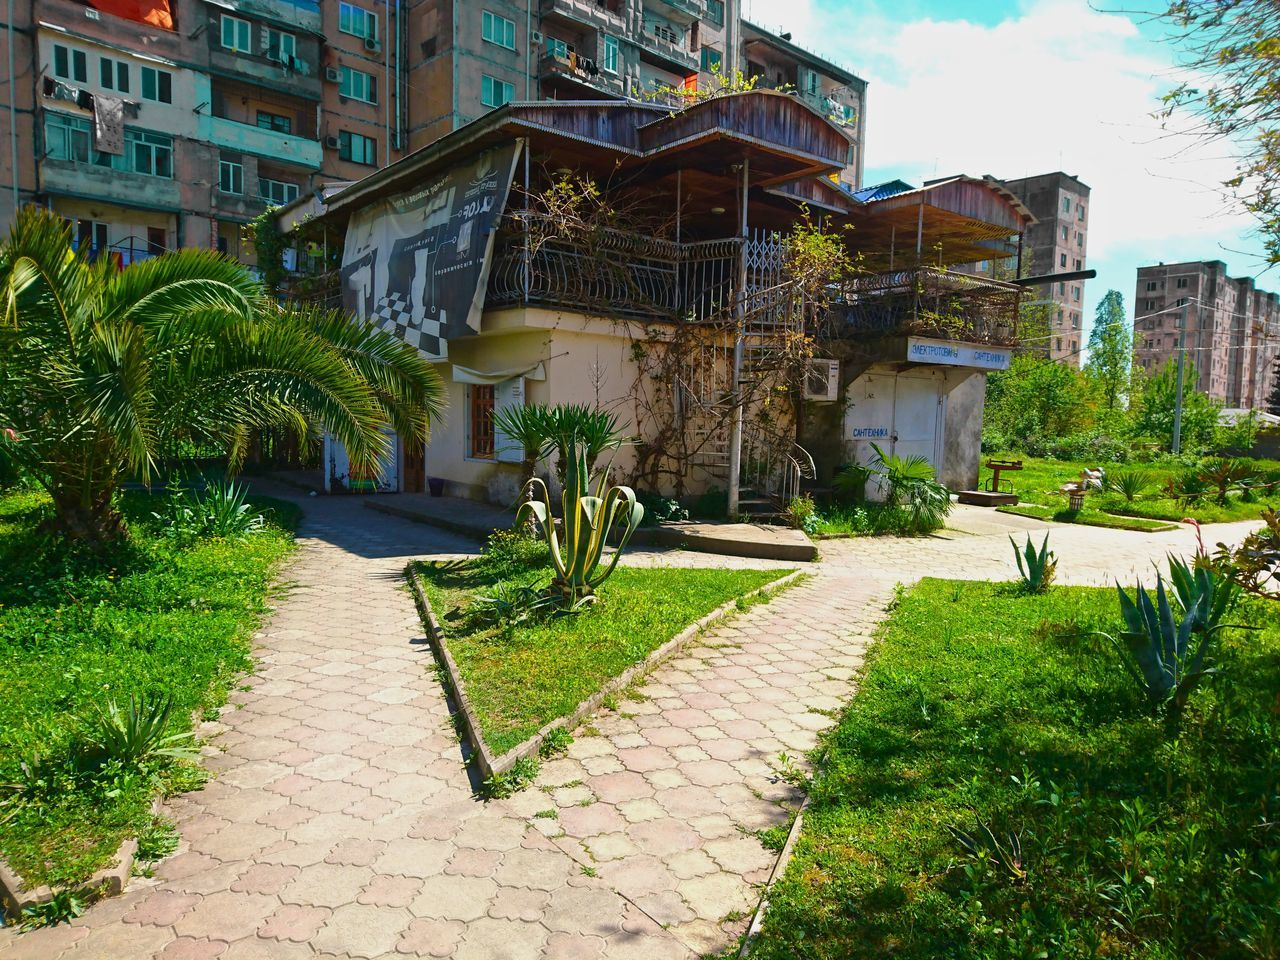 architecture, built structure, building exterior, outdoors, grass, tree, day, no people, nature, city, sky